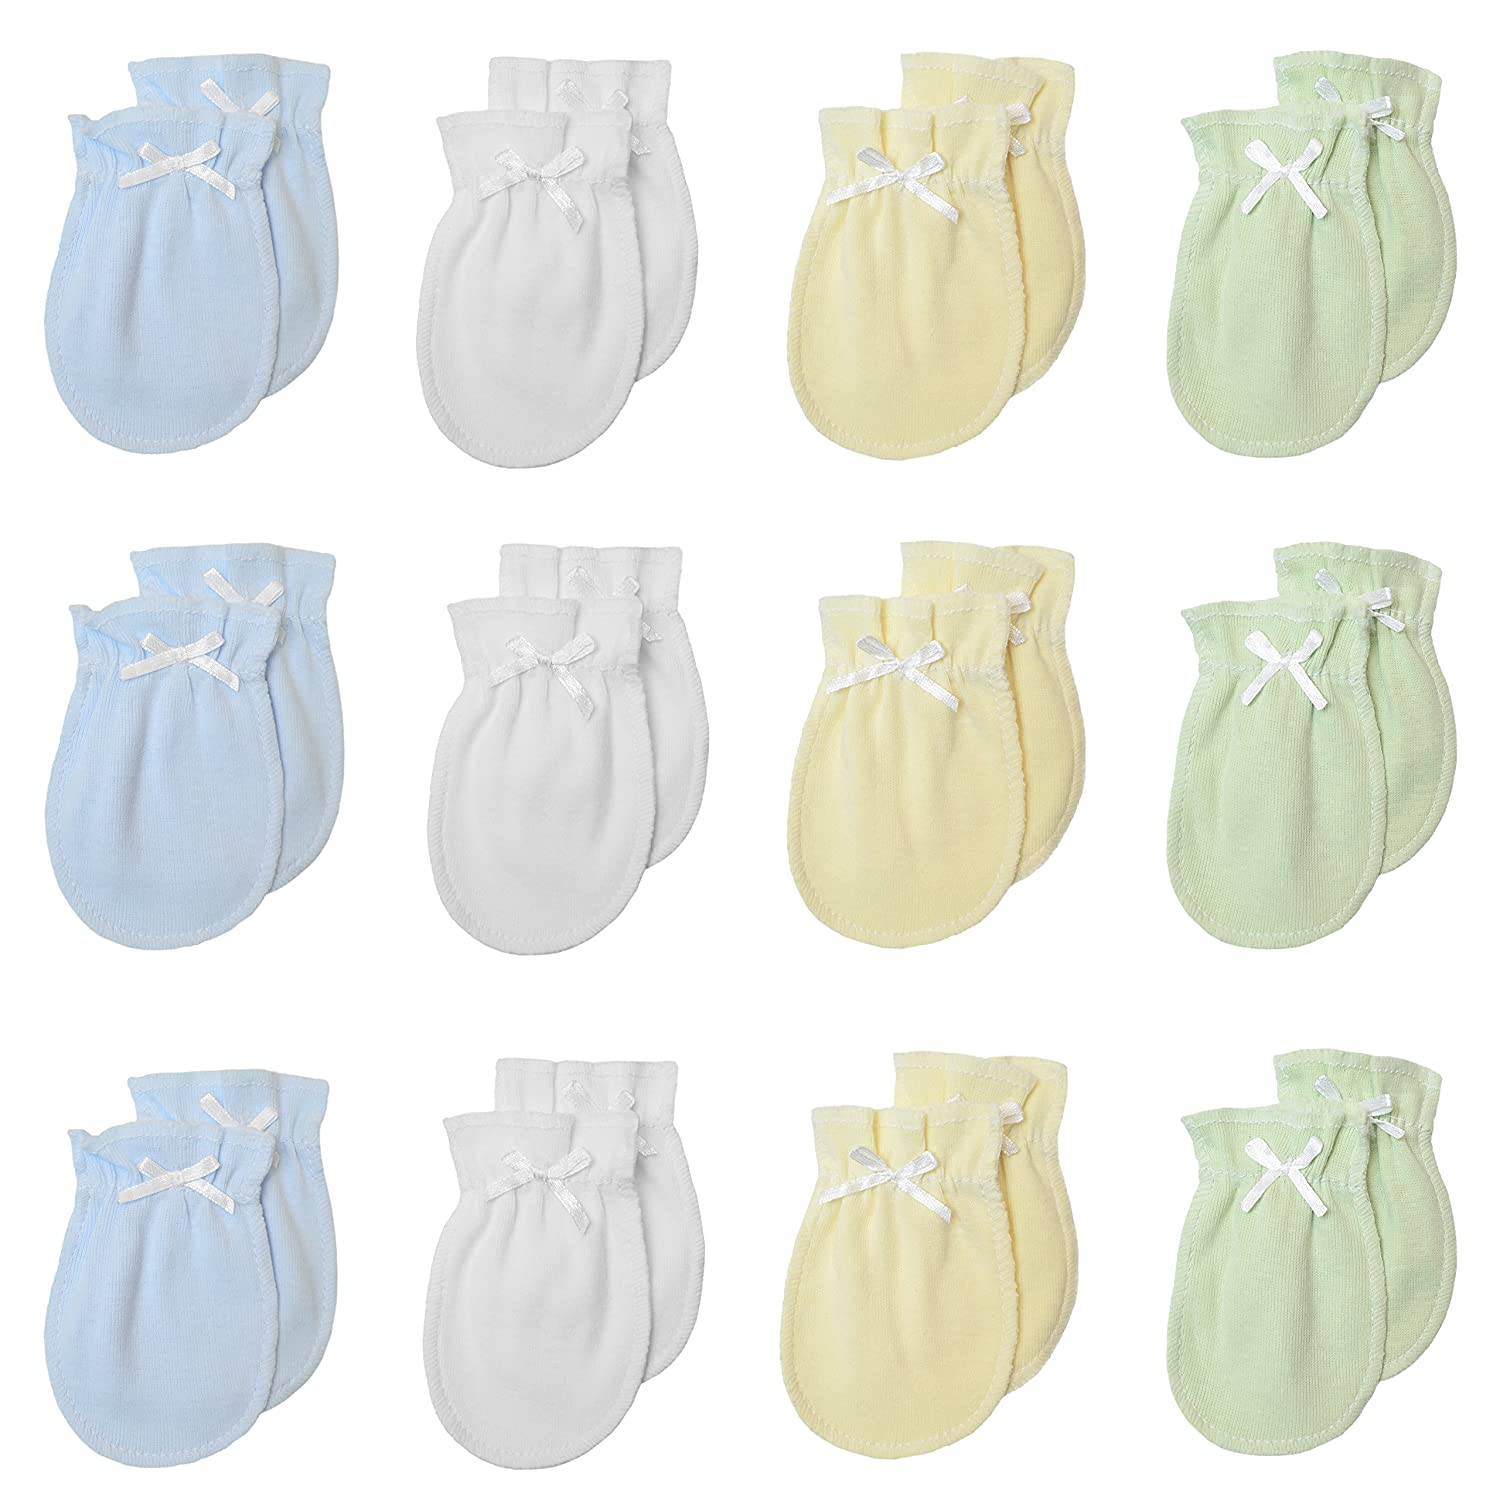 TL Care Newborn Baby 100% Cotton Scratch FreeMittens, for Boys